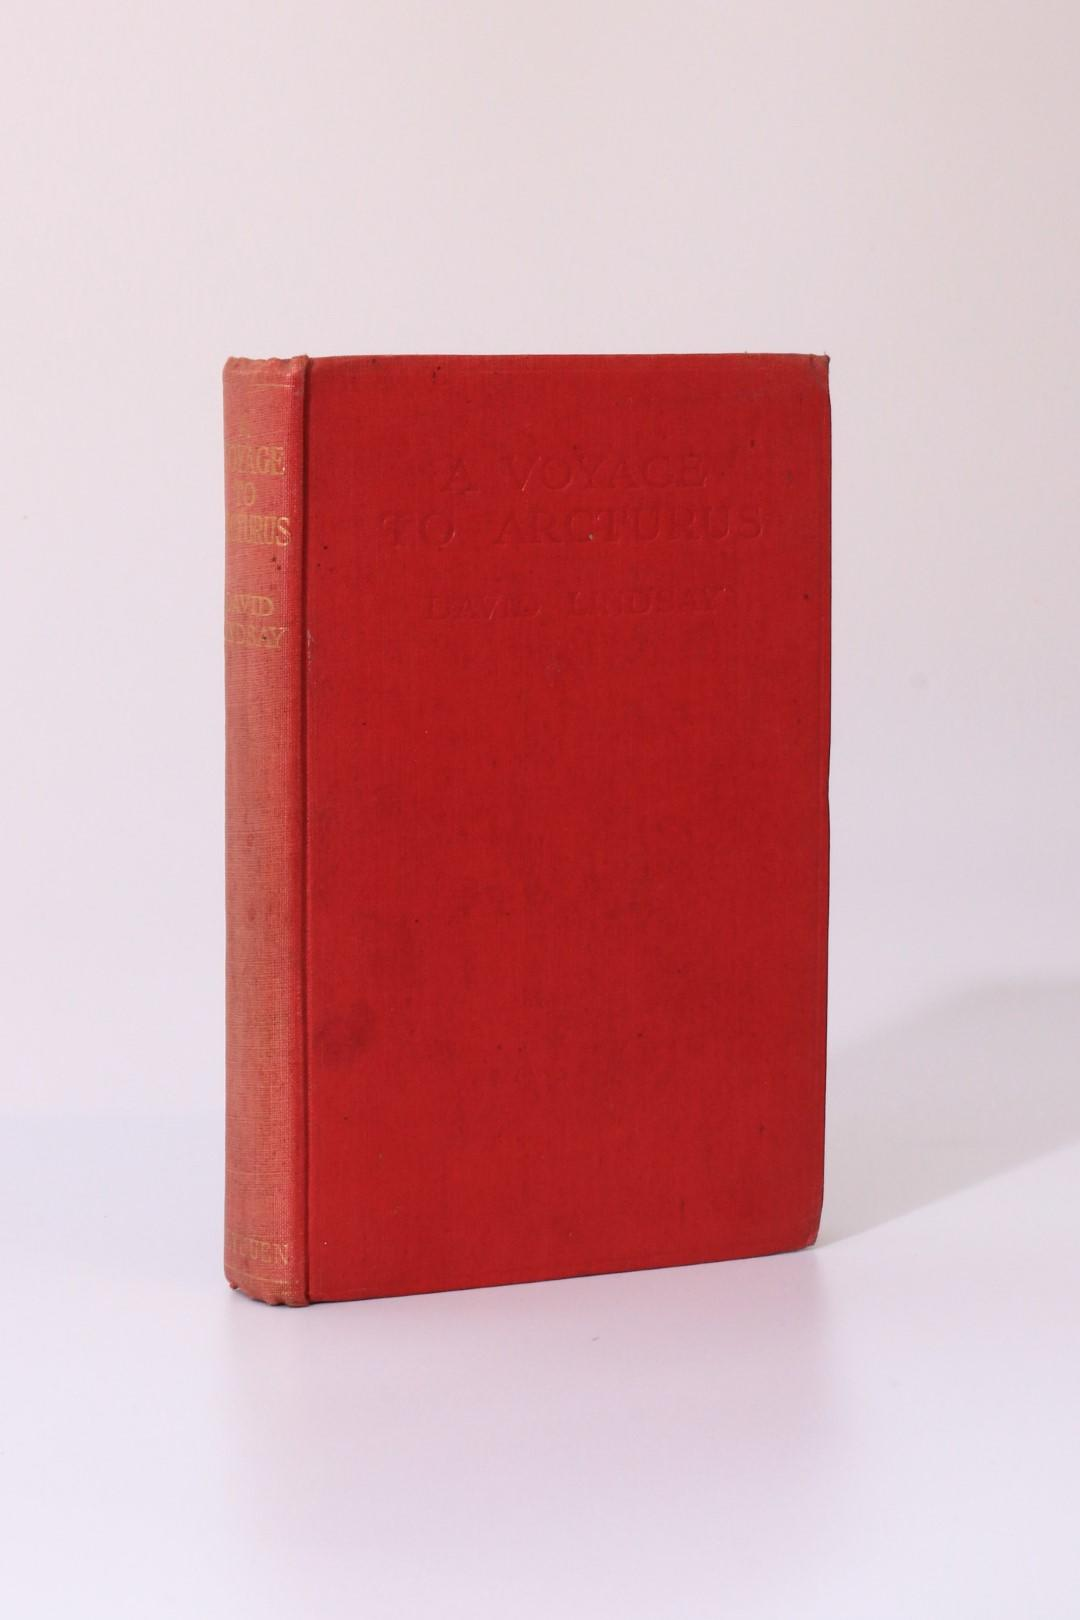 David Lindsay - A Voyage to Arcturus - Methuen, 1920, First Edition.